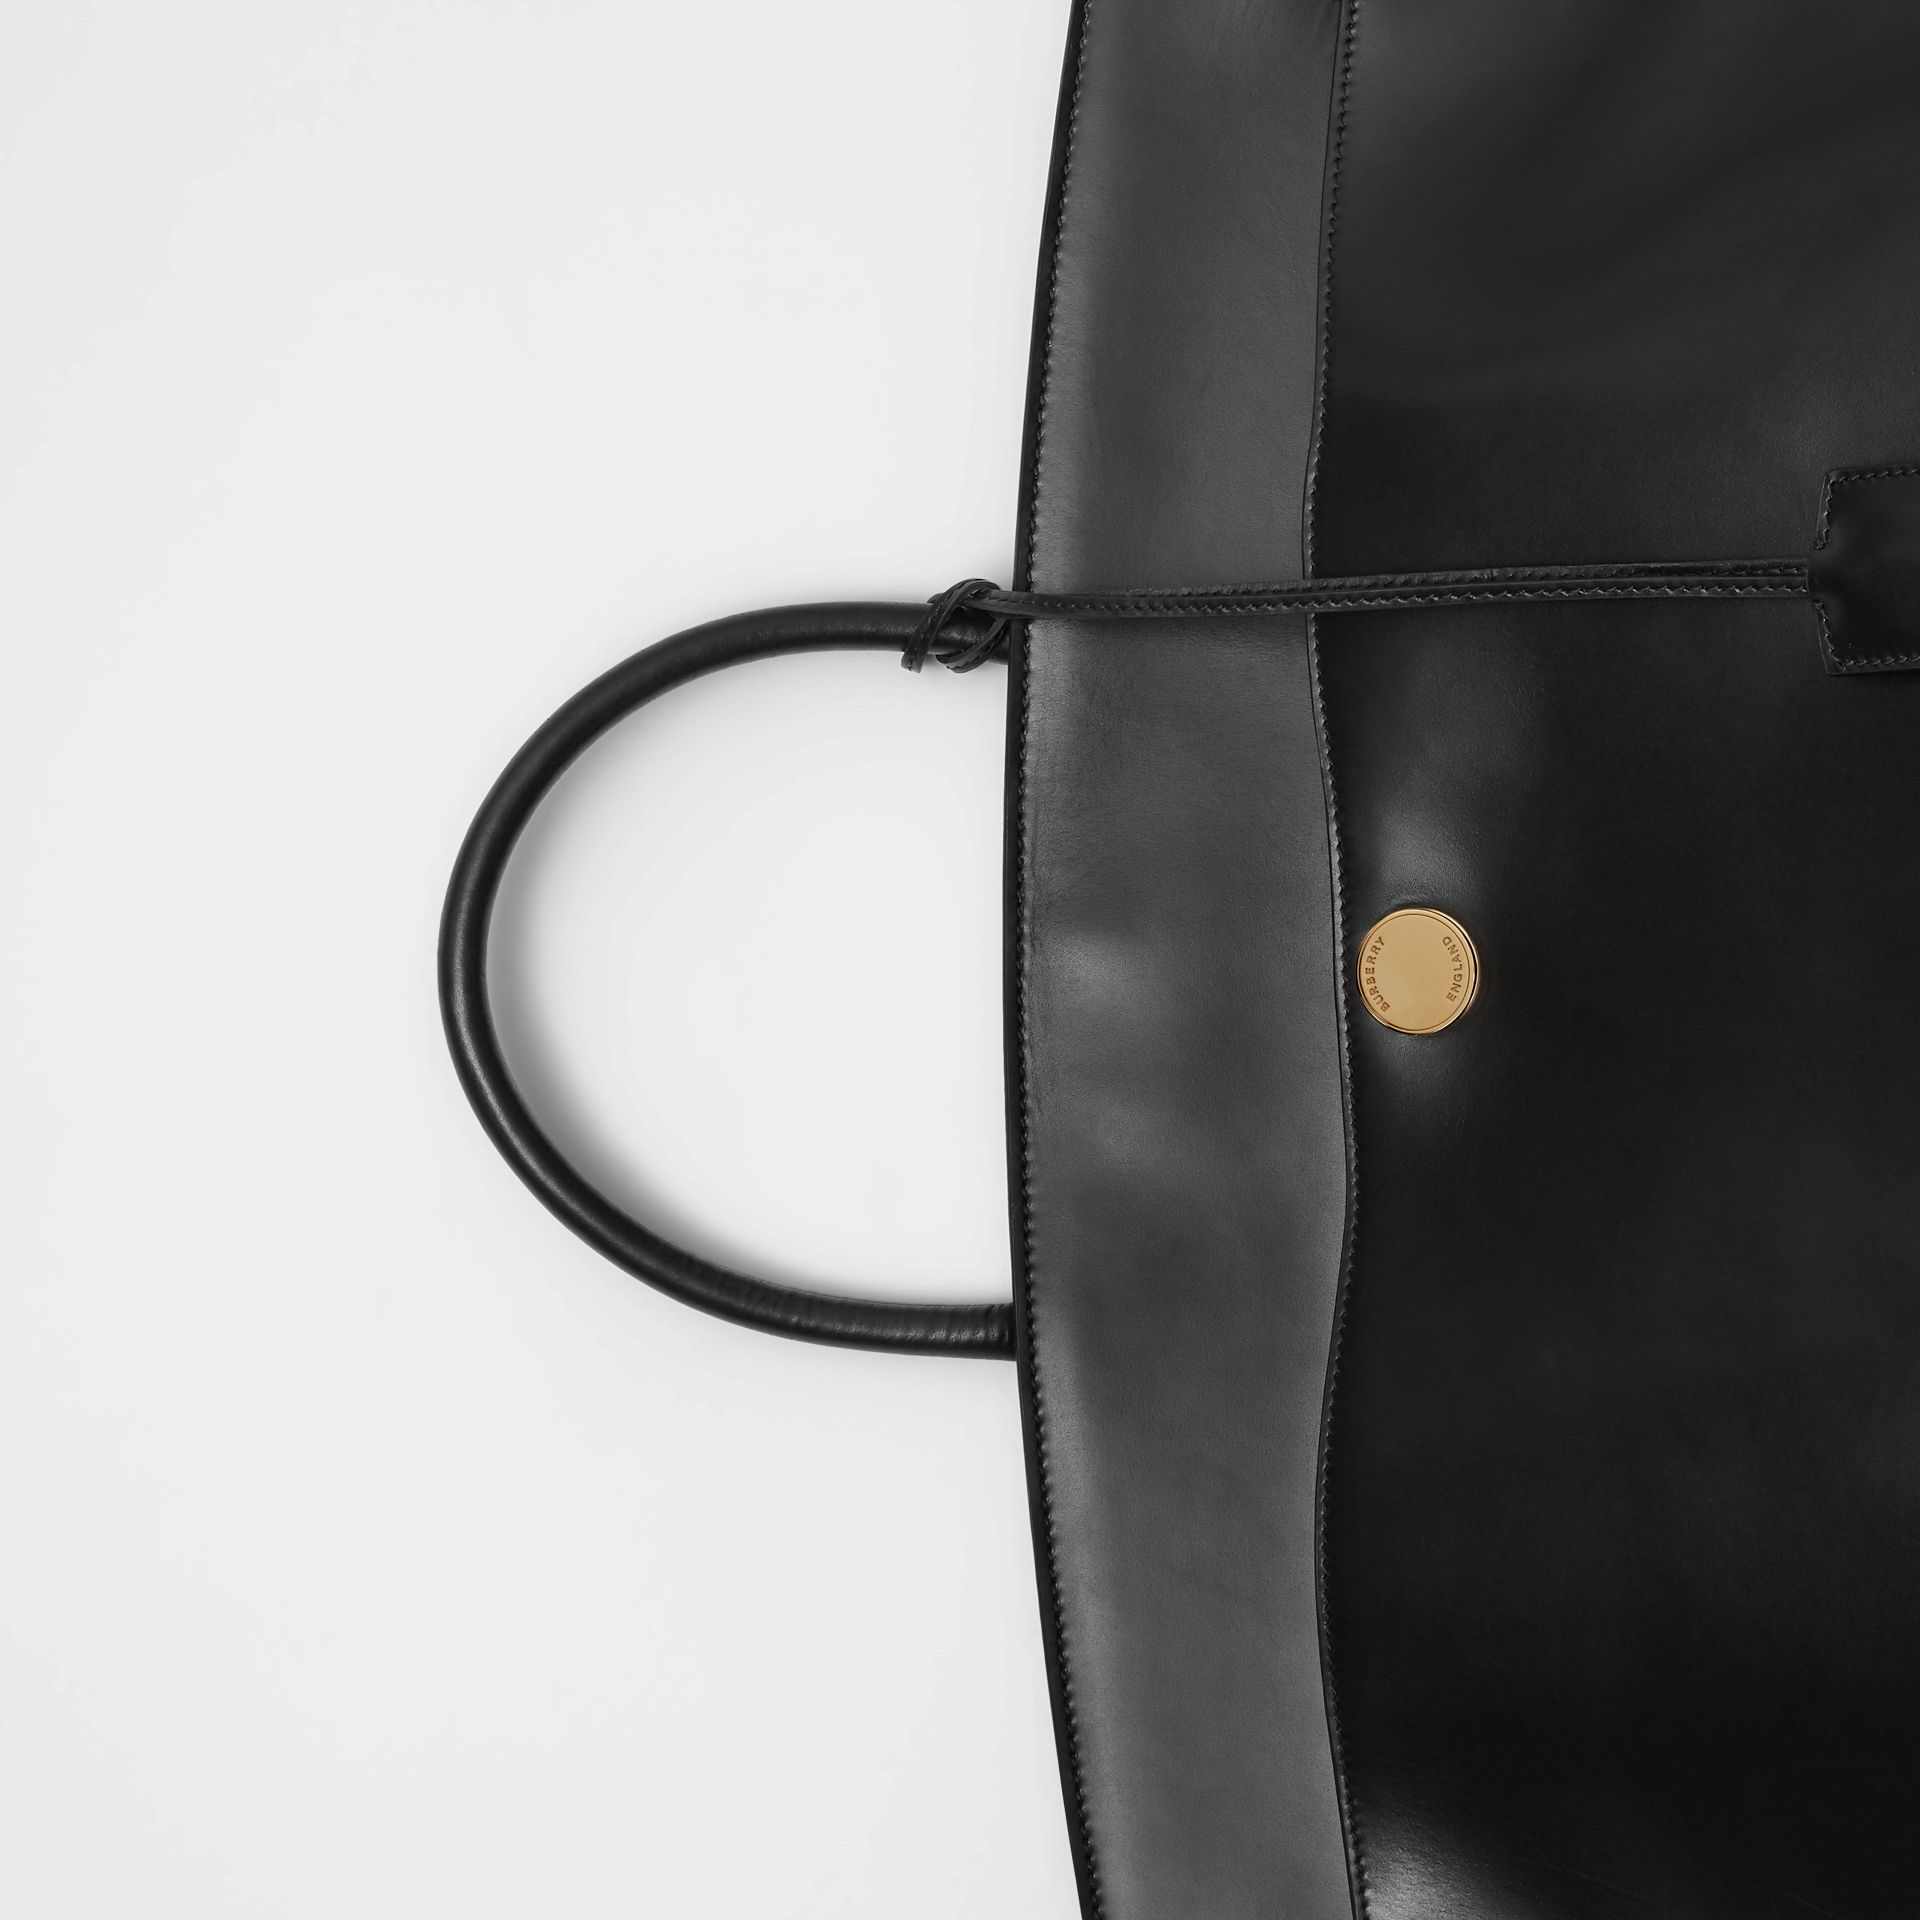 Leather Society Top Handle Bag in Black - Women | Burberry - gallery image 1